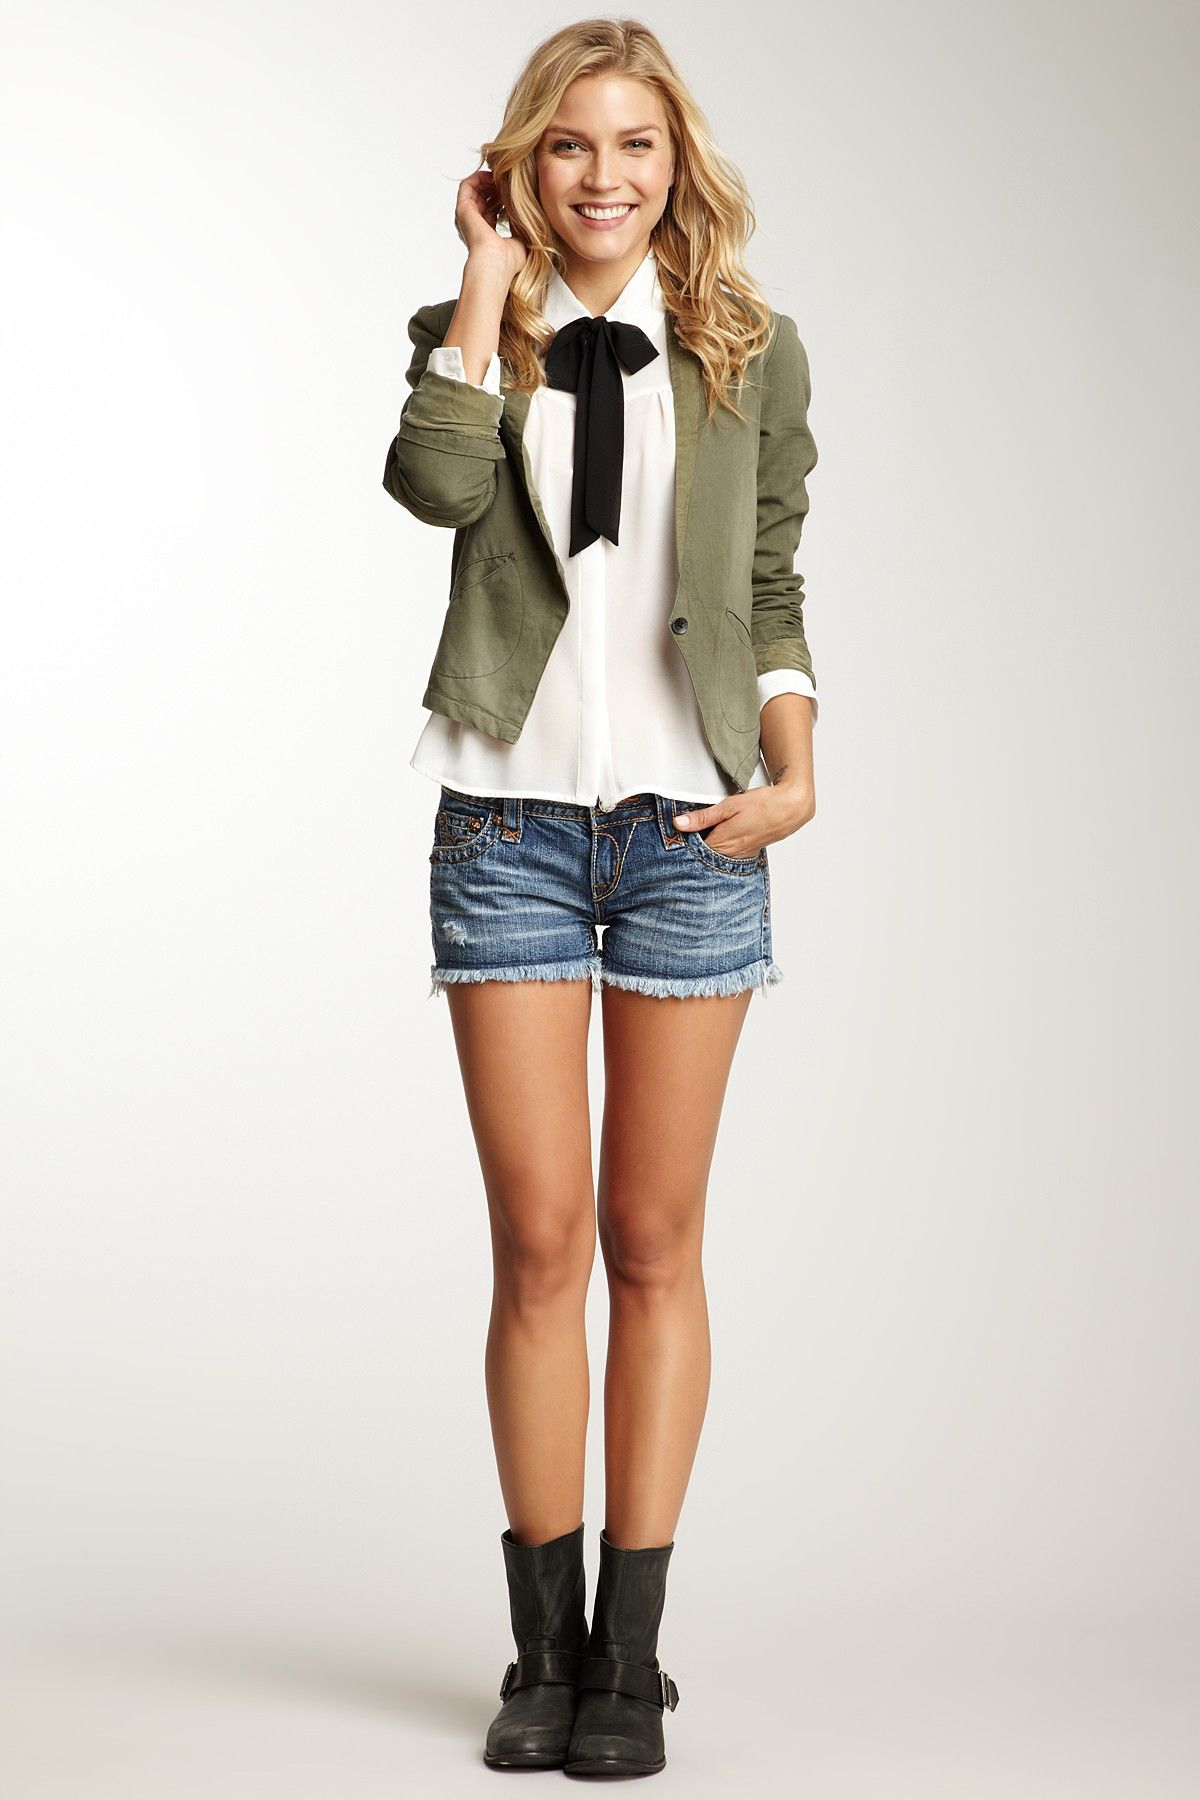 <3 this from the waist up <3. Anyone have any ideas who the blazer or blouse is by?